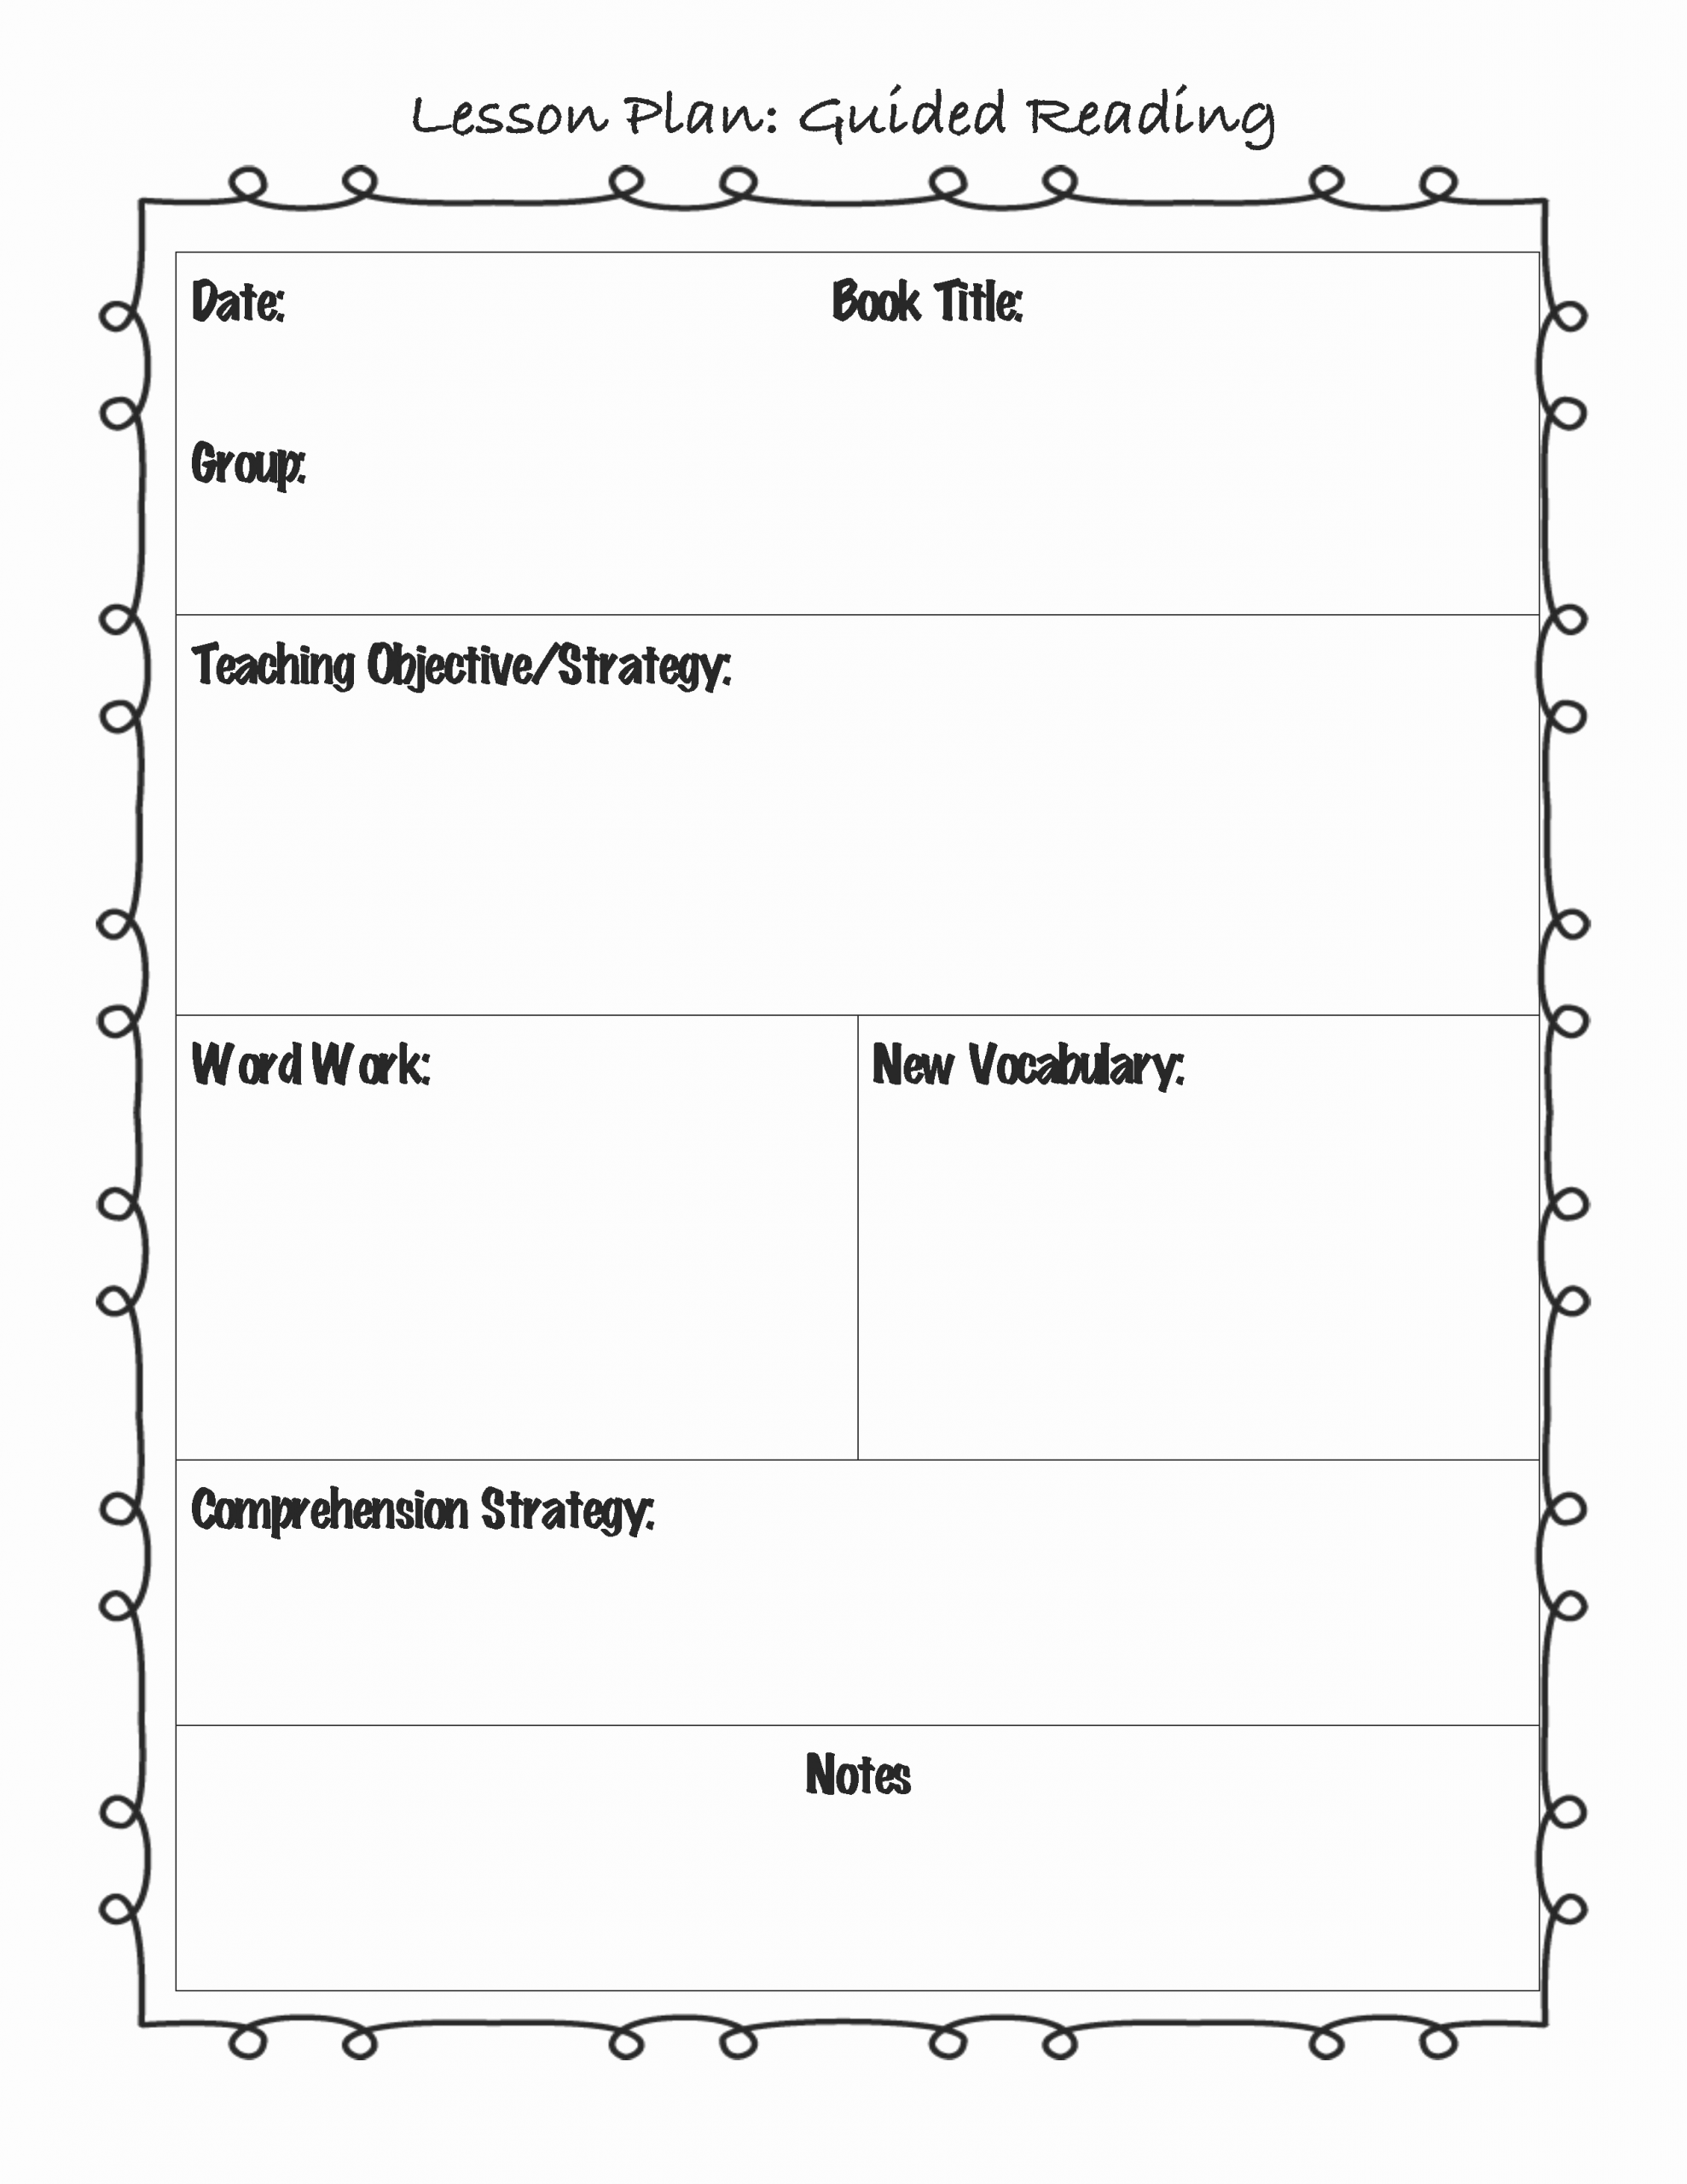 Blank Lesson Plan Template Free Inspirational Guided Reading Lesson Plan Template